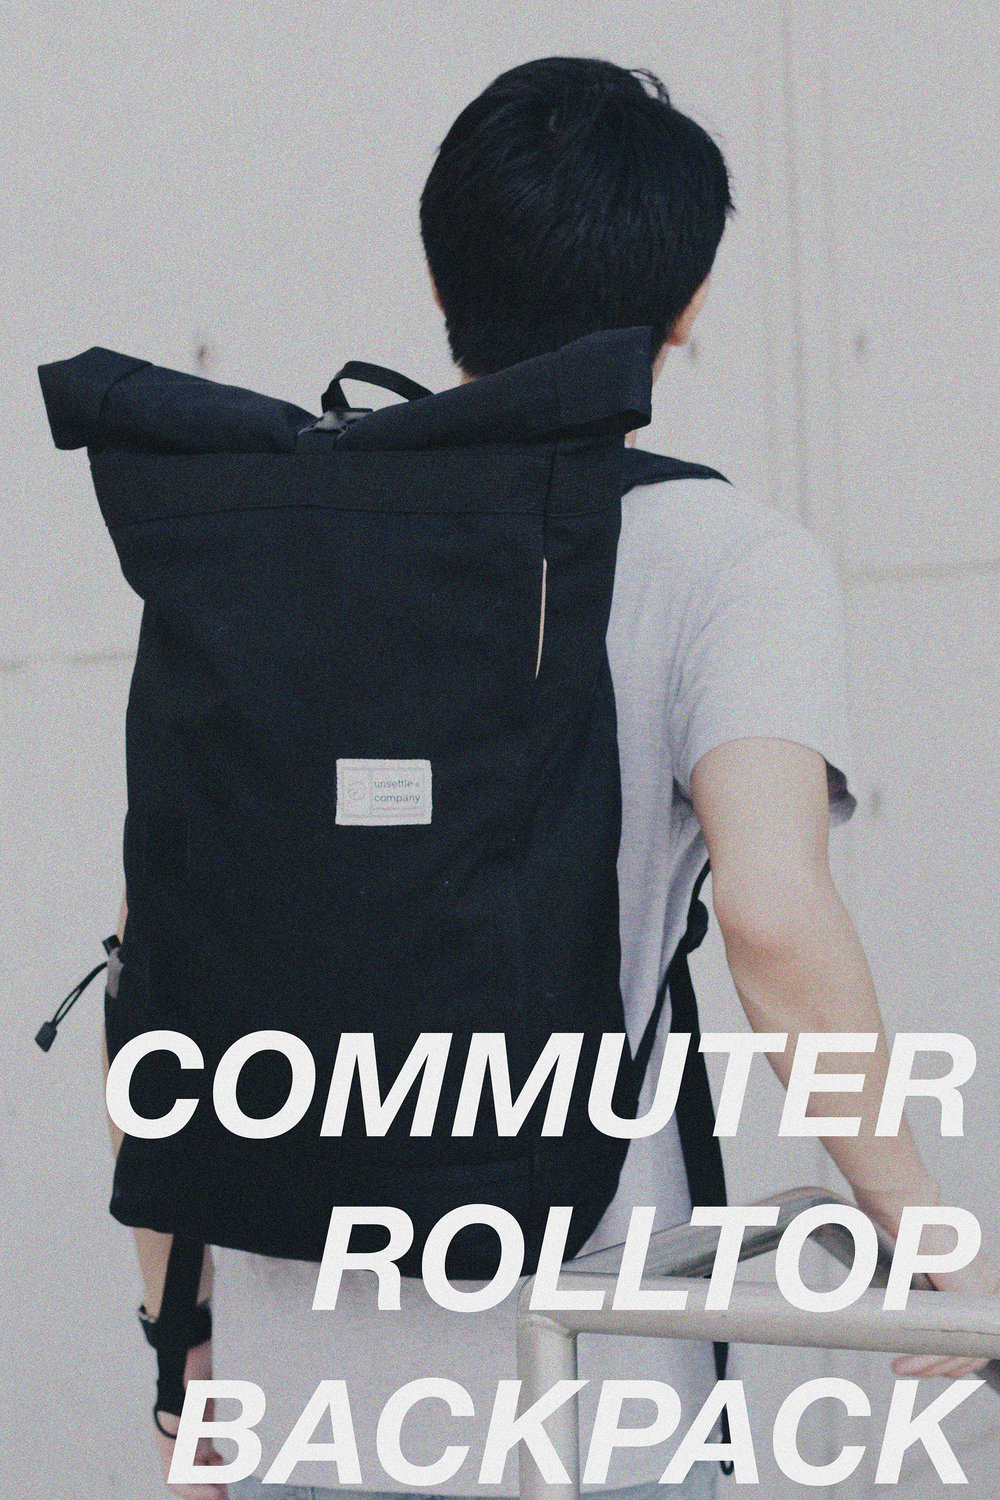 Commuter-Rolltop-Backpack-lookbook